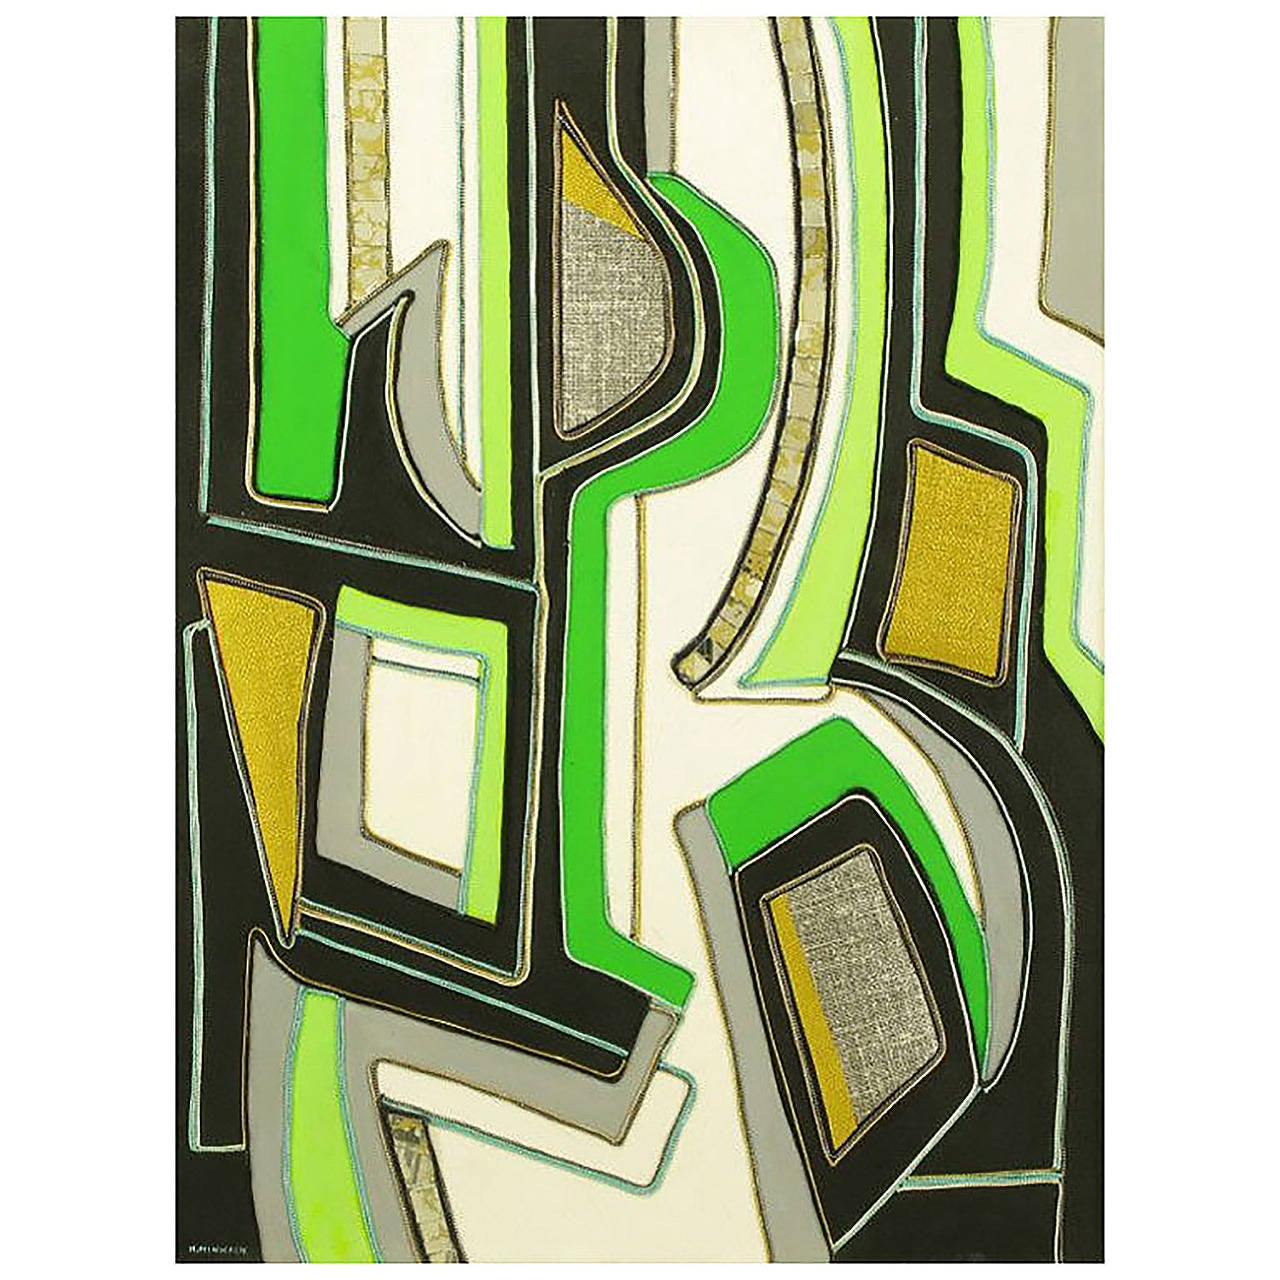 Green Black and Gold Mixed Media Abstract Painting Signed H. Minnick